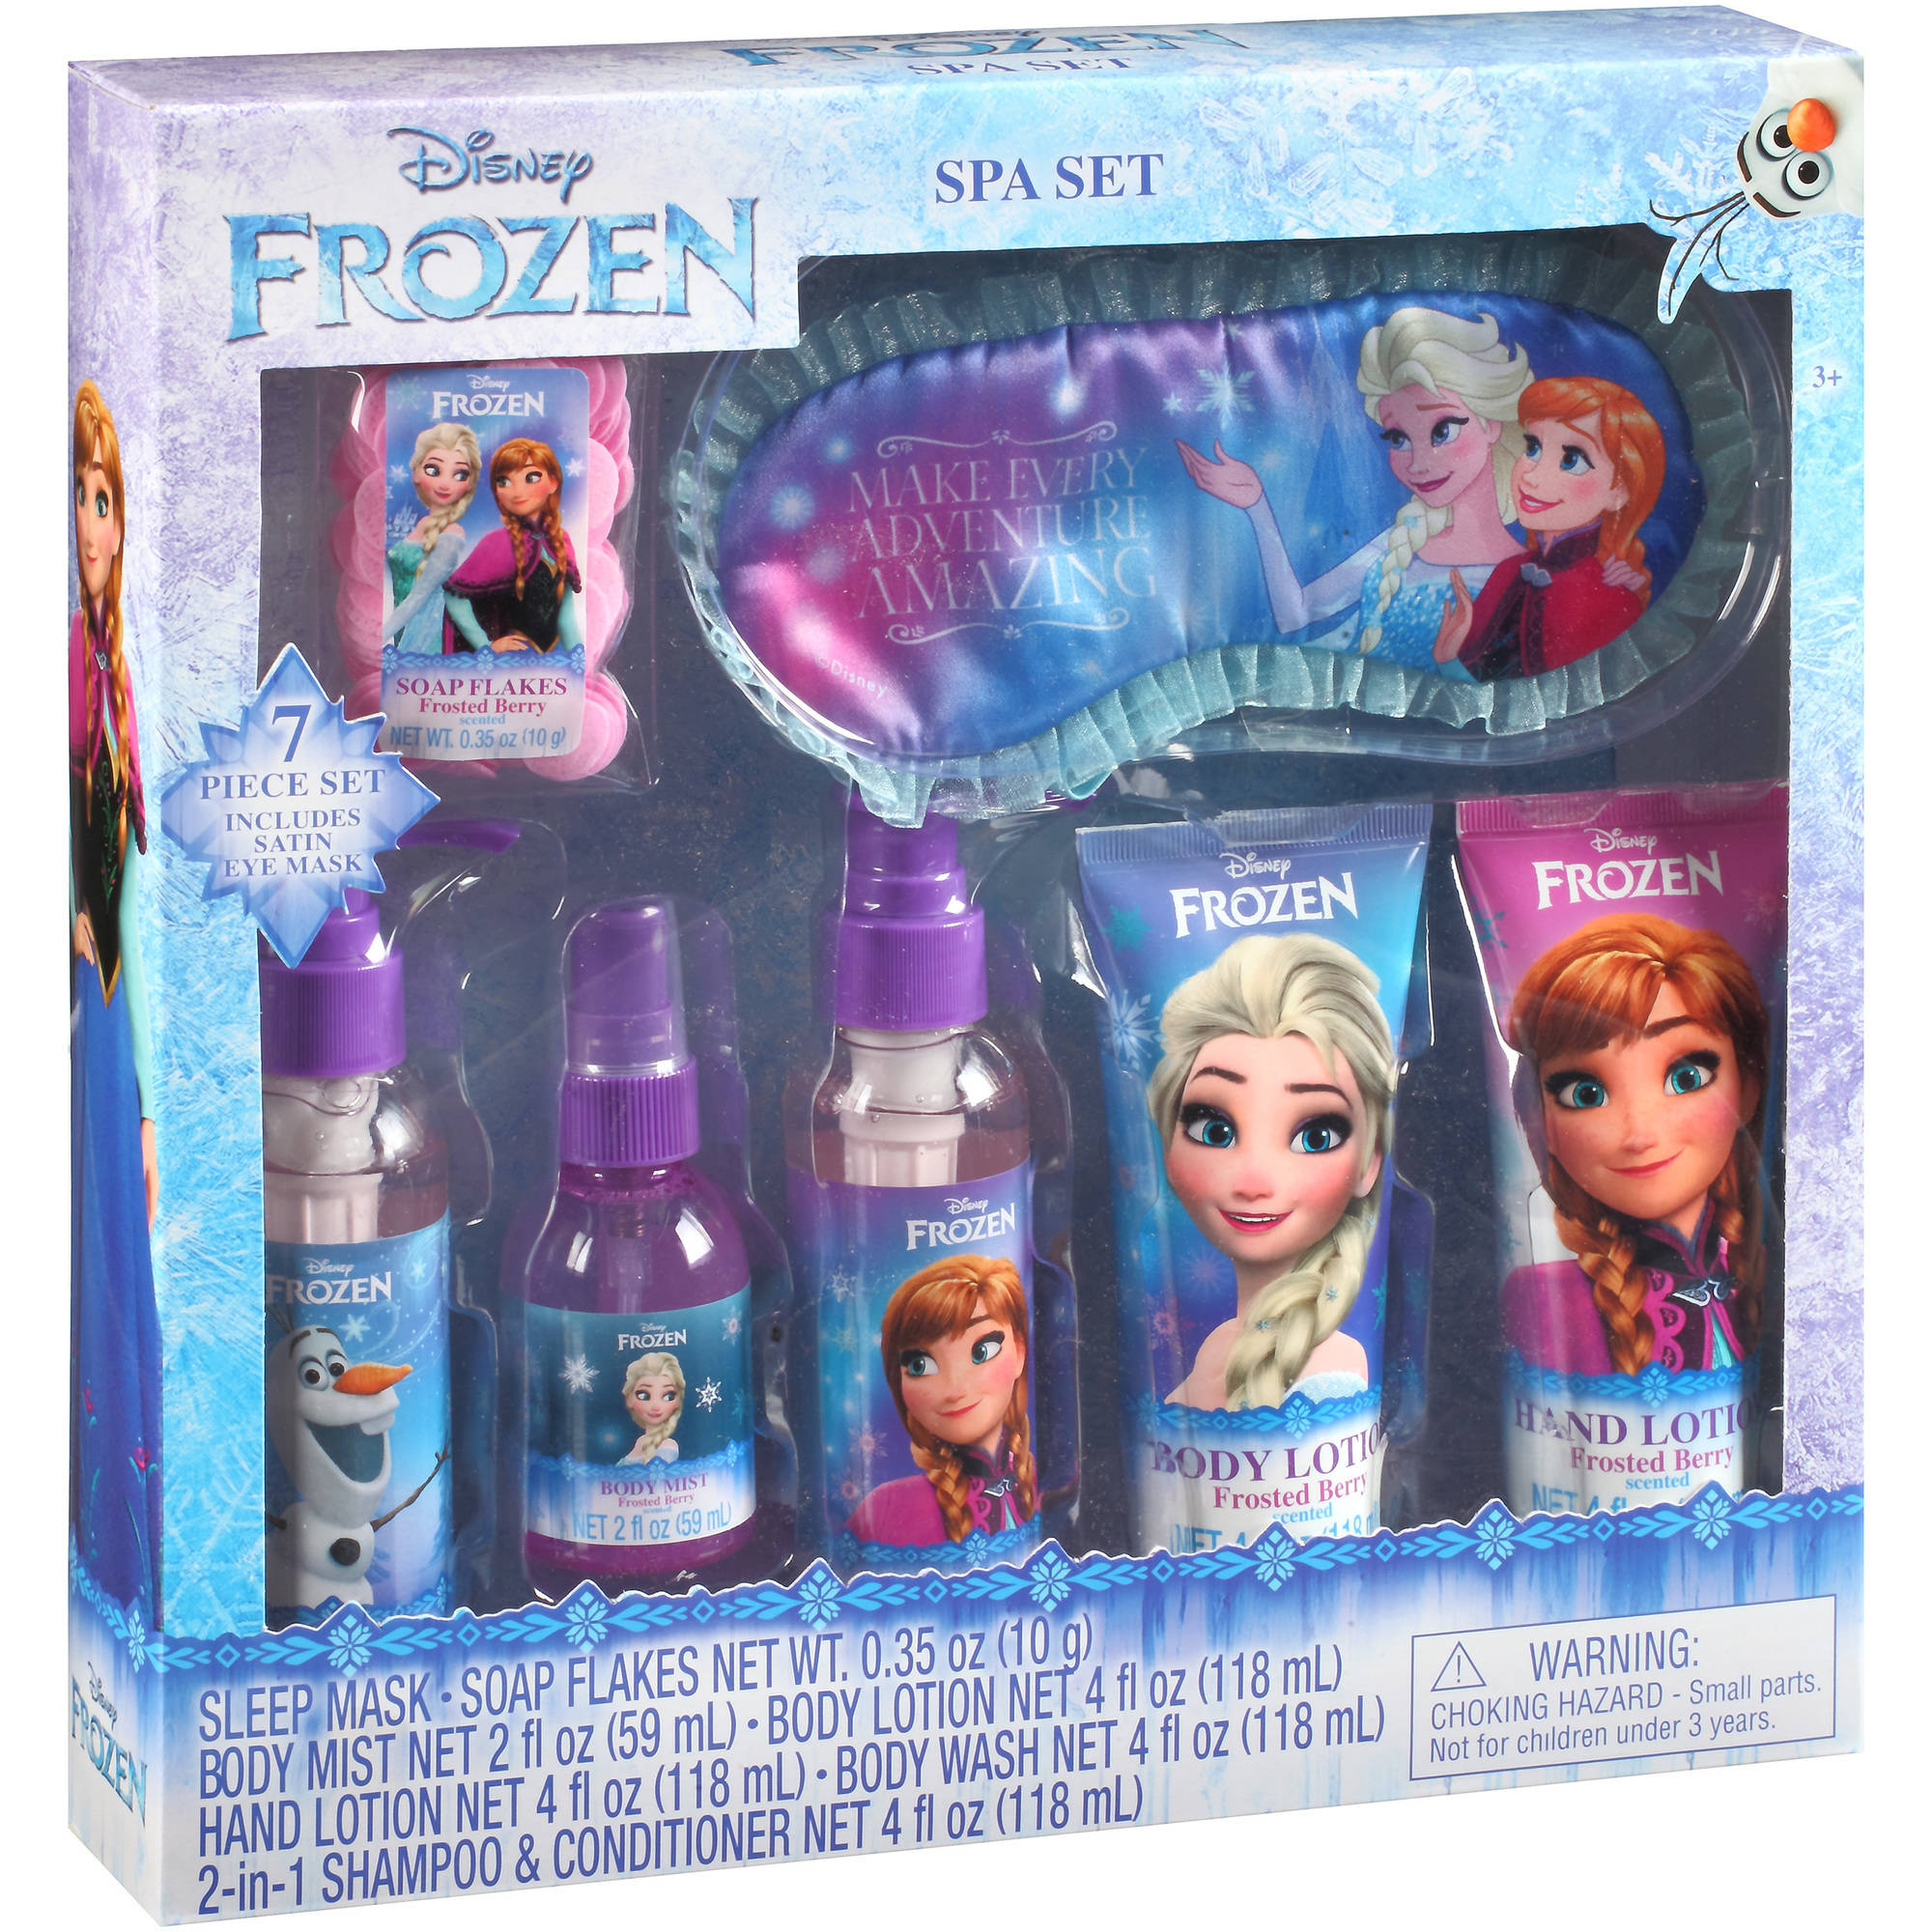 Disney Frozen Spa Set, 7 pc